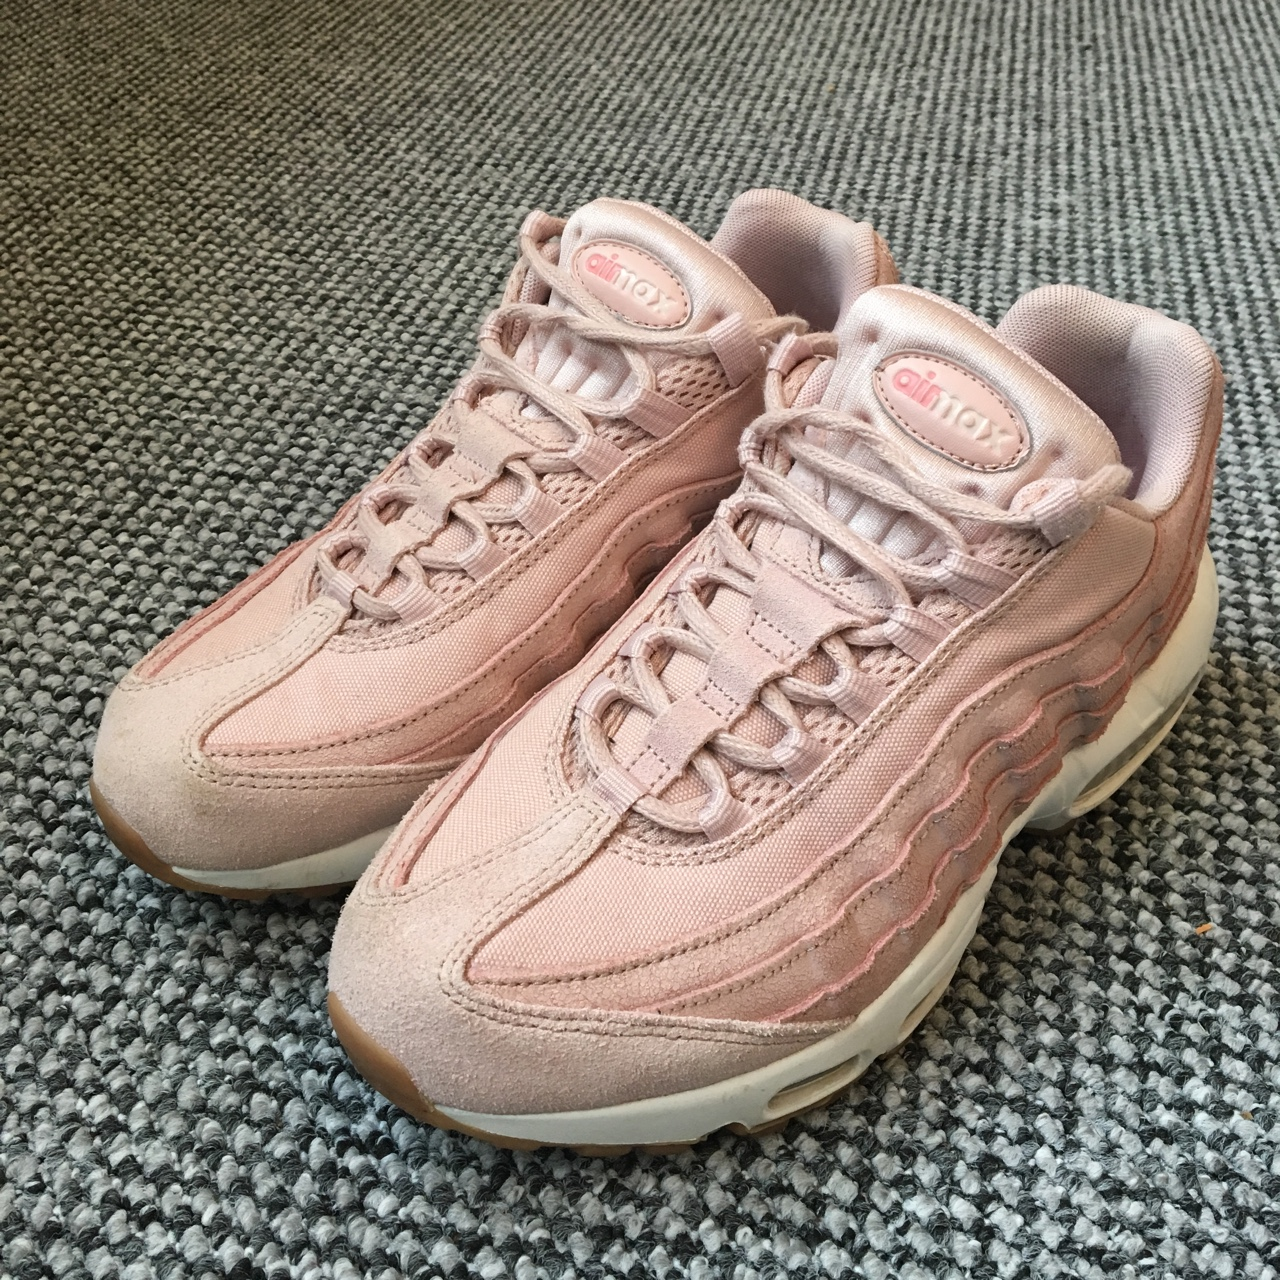 50% off shoes for cheap clearance sale NIKE AIR MAX 95 Pink Oxford Prm Near-perfect... - Depop